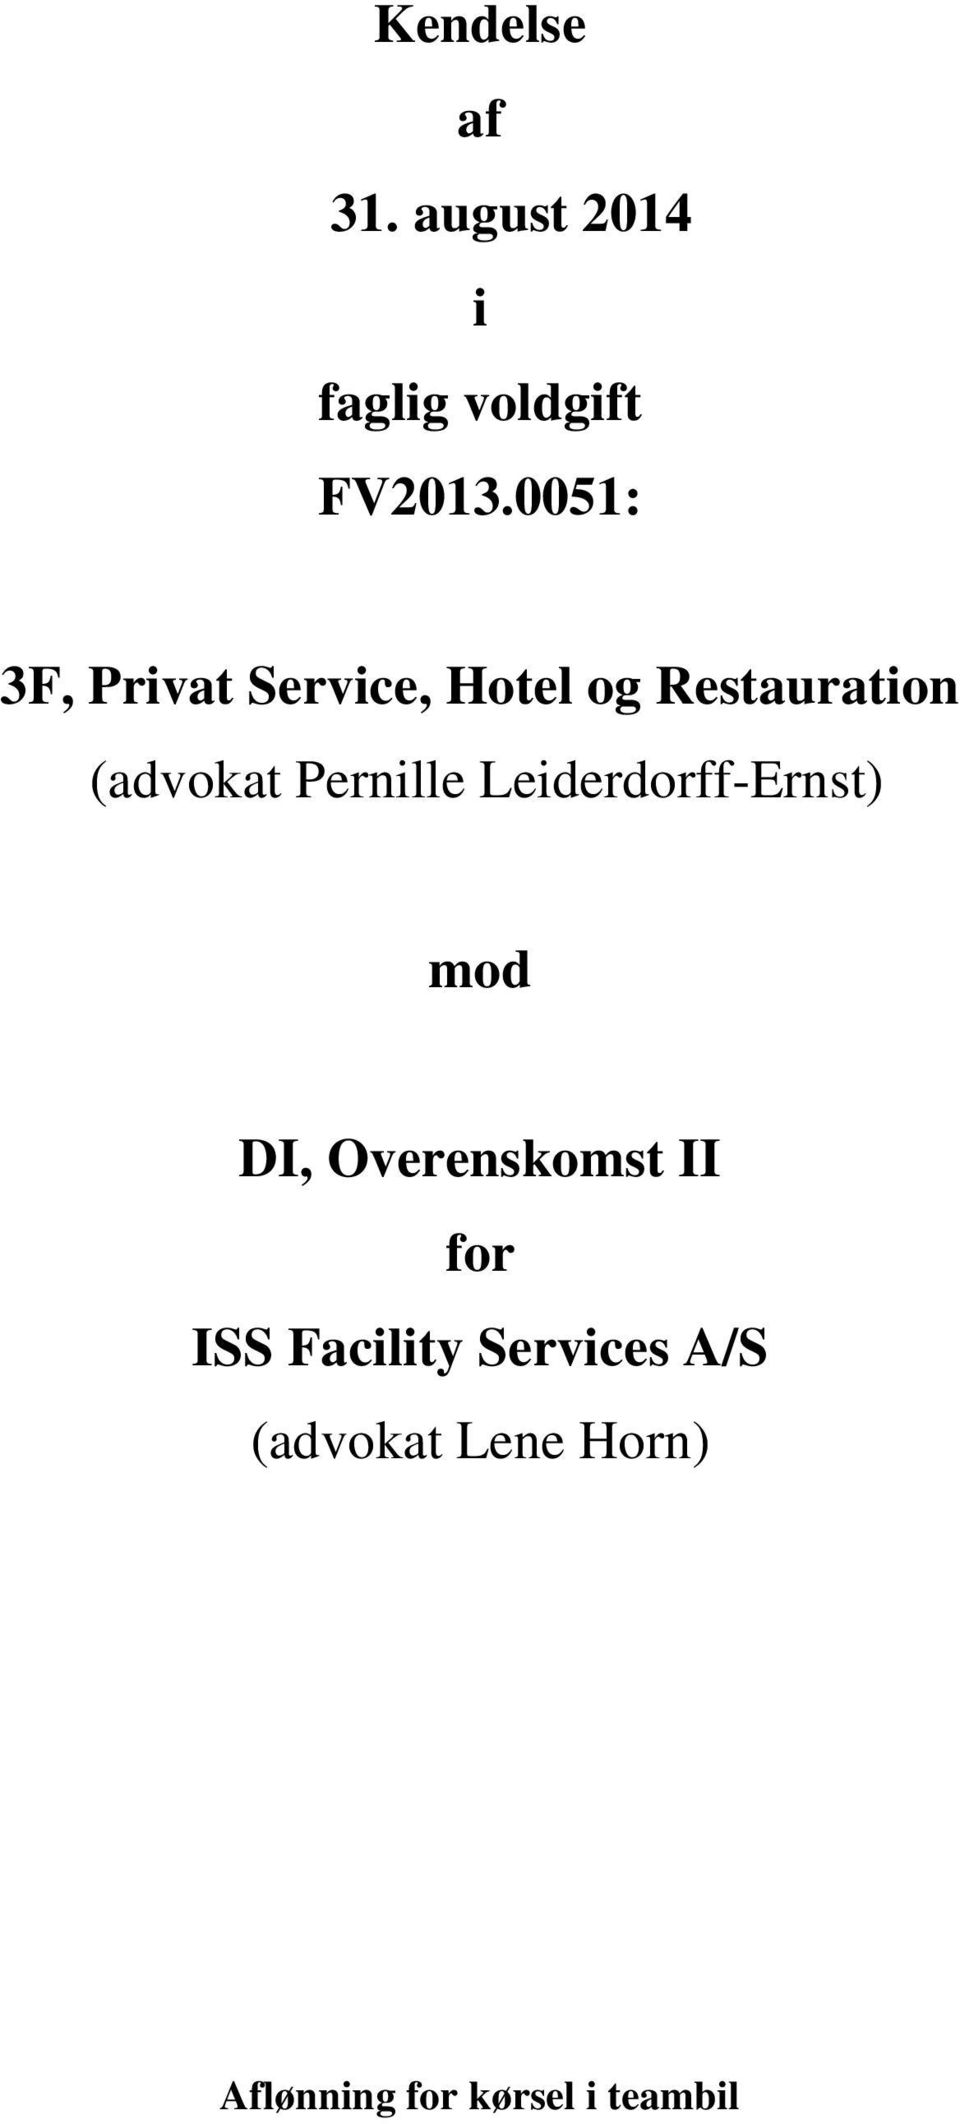 Pernille Leiderdorff-Ernst) mod DI, Overenskomst II for ISS